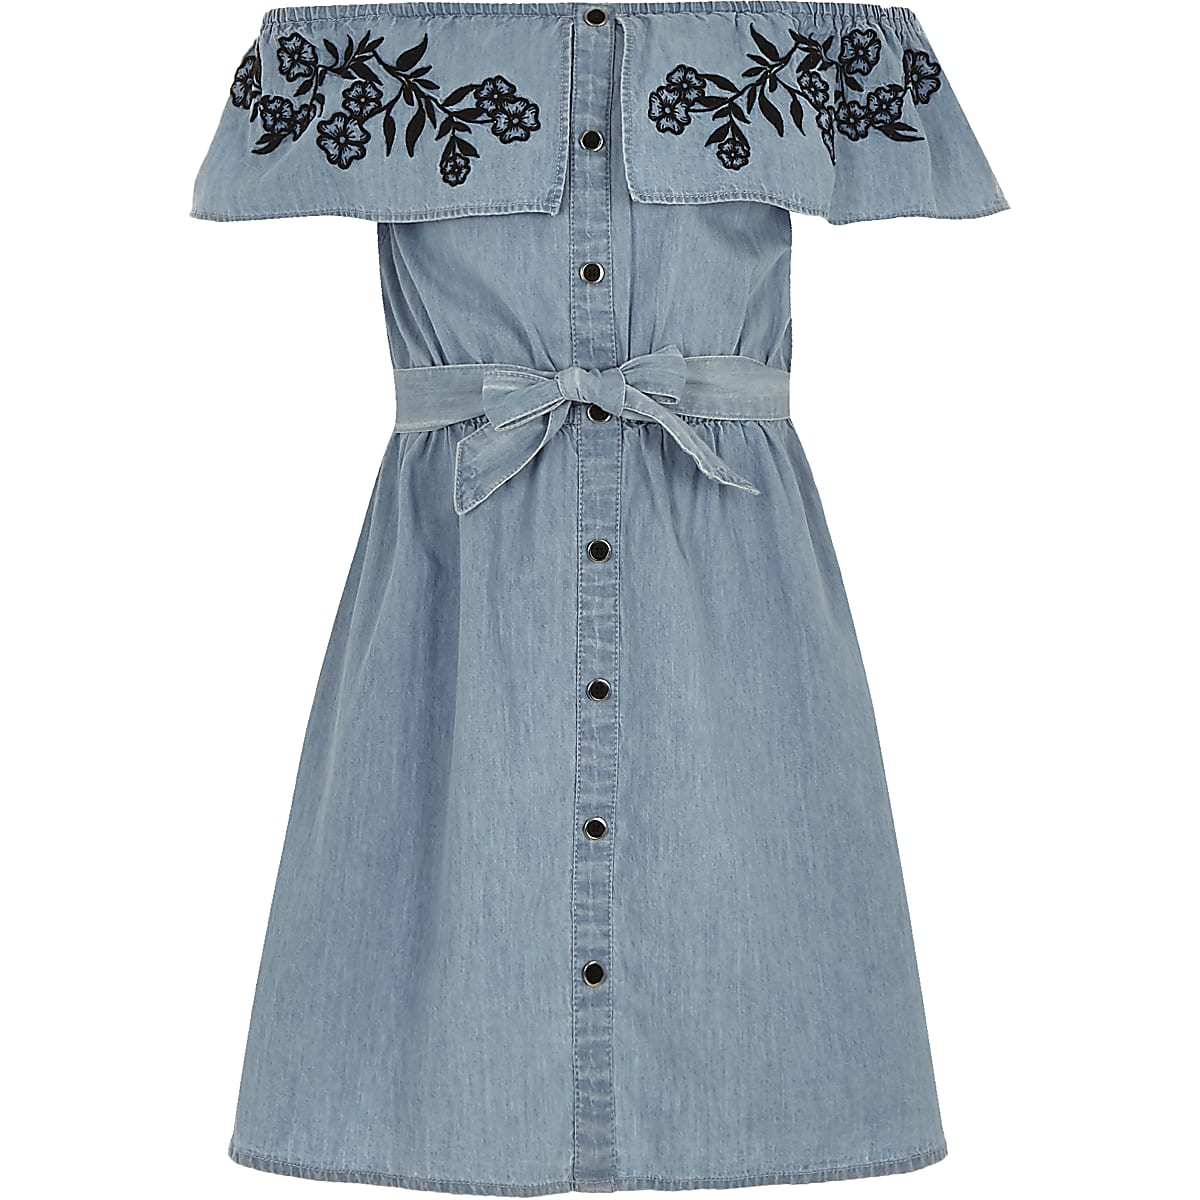 897d8a1d7e2 Girls blue bardot tie waist denim dress - Day Dresses - Dresses - girls